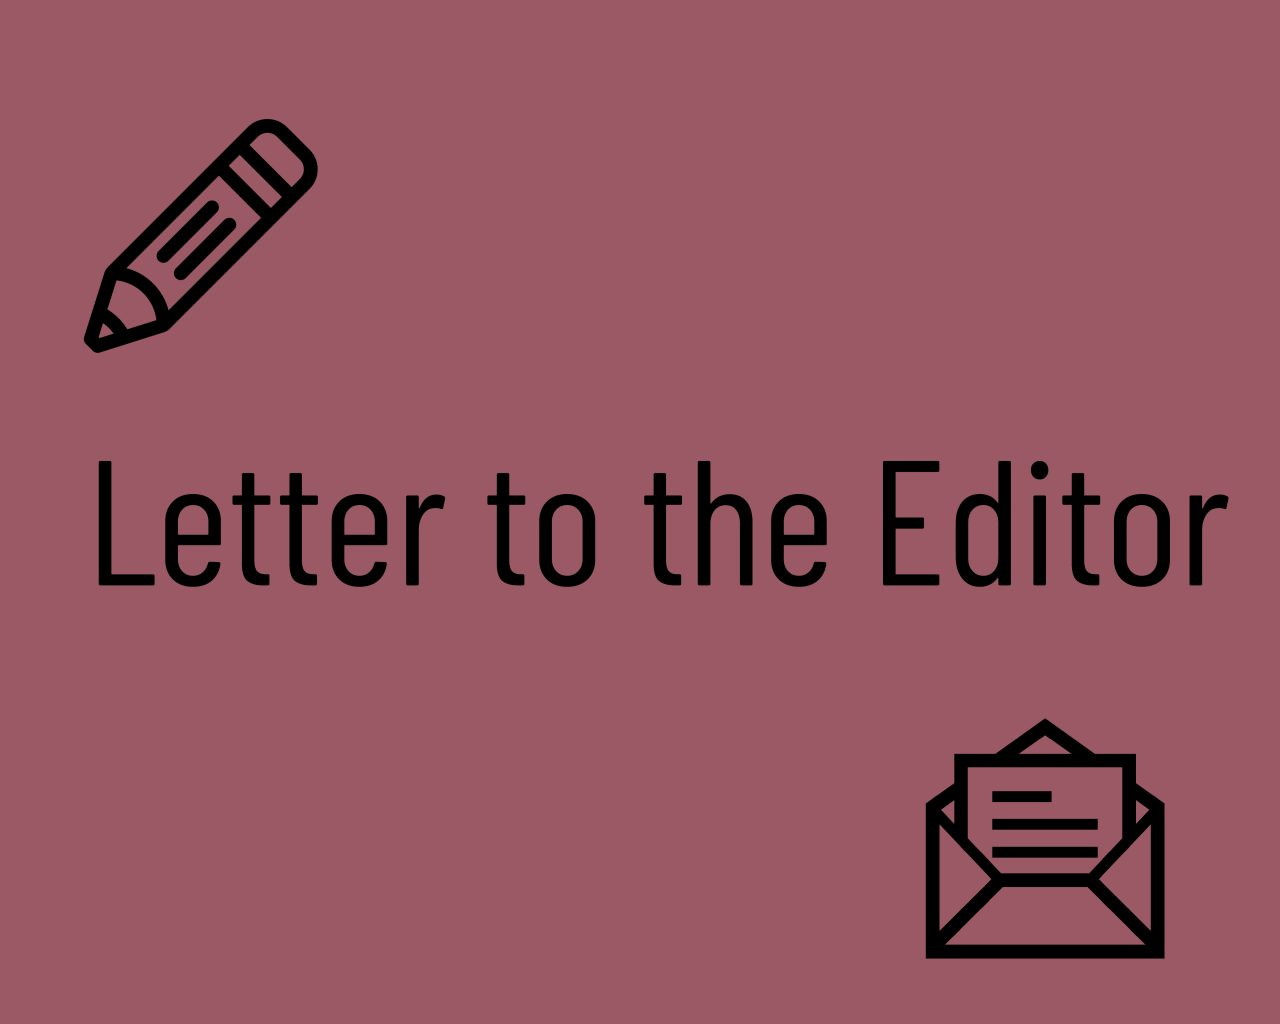 Letter+to+the+editor